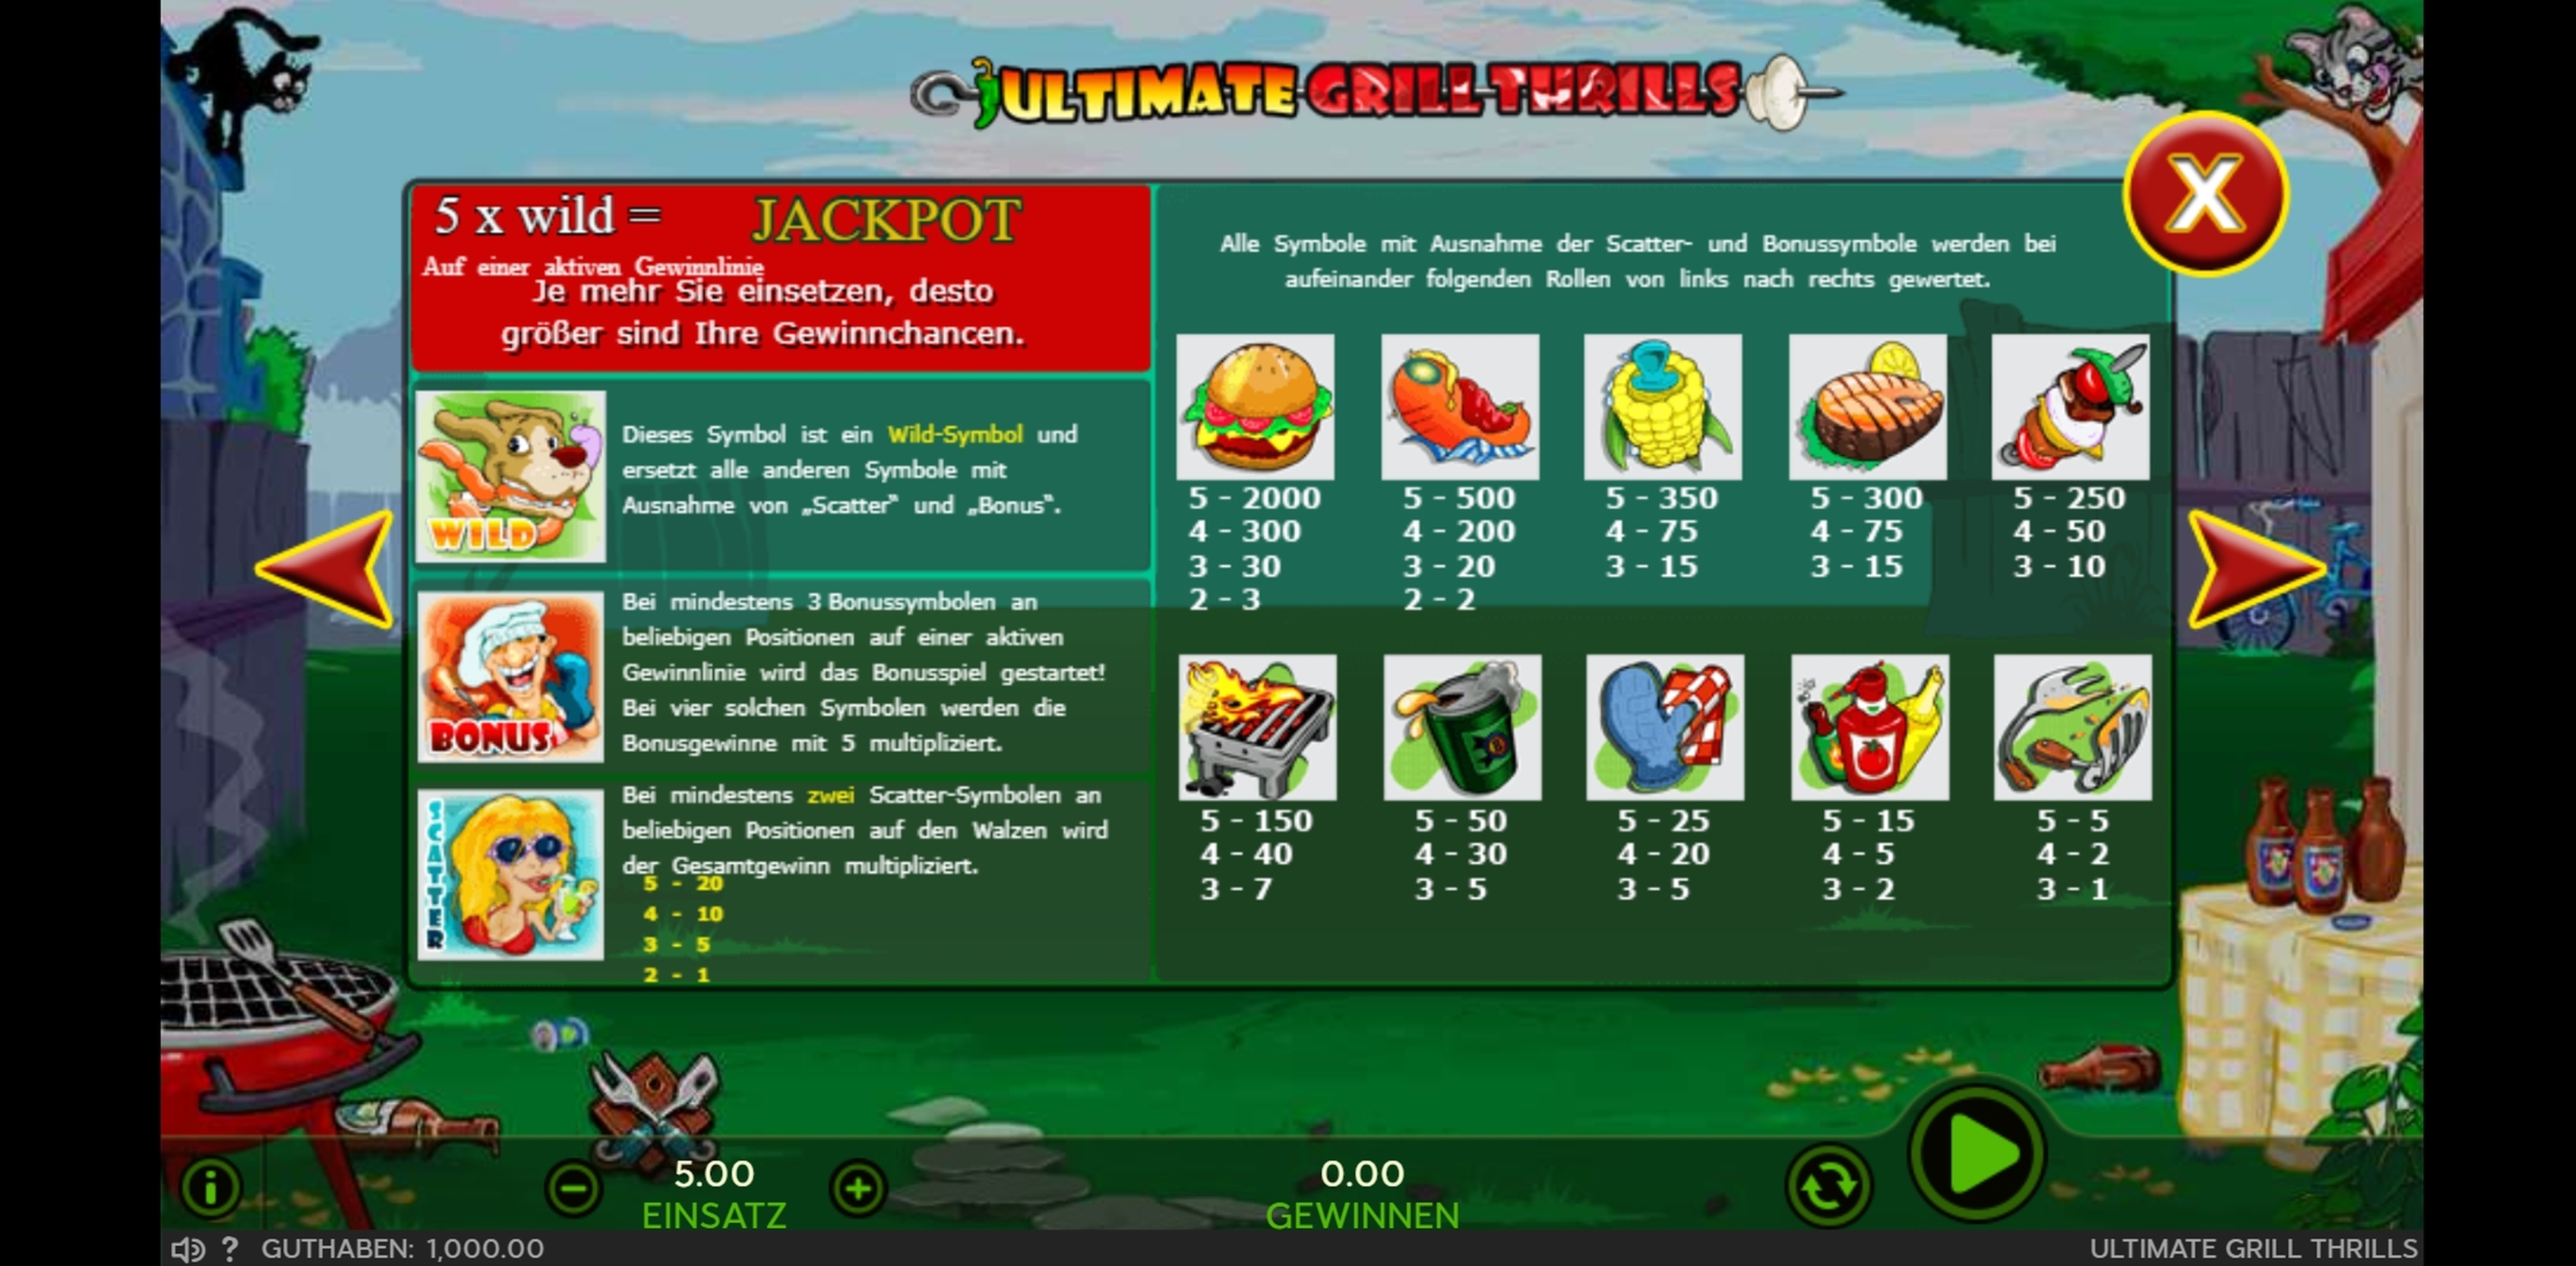 Info of Ultimate Grill Thrills Slot Game by 888 Gaming